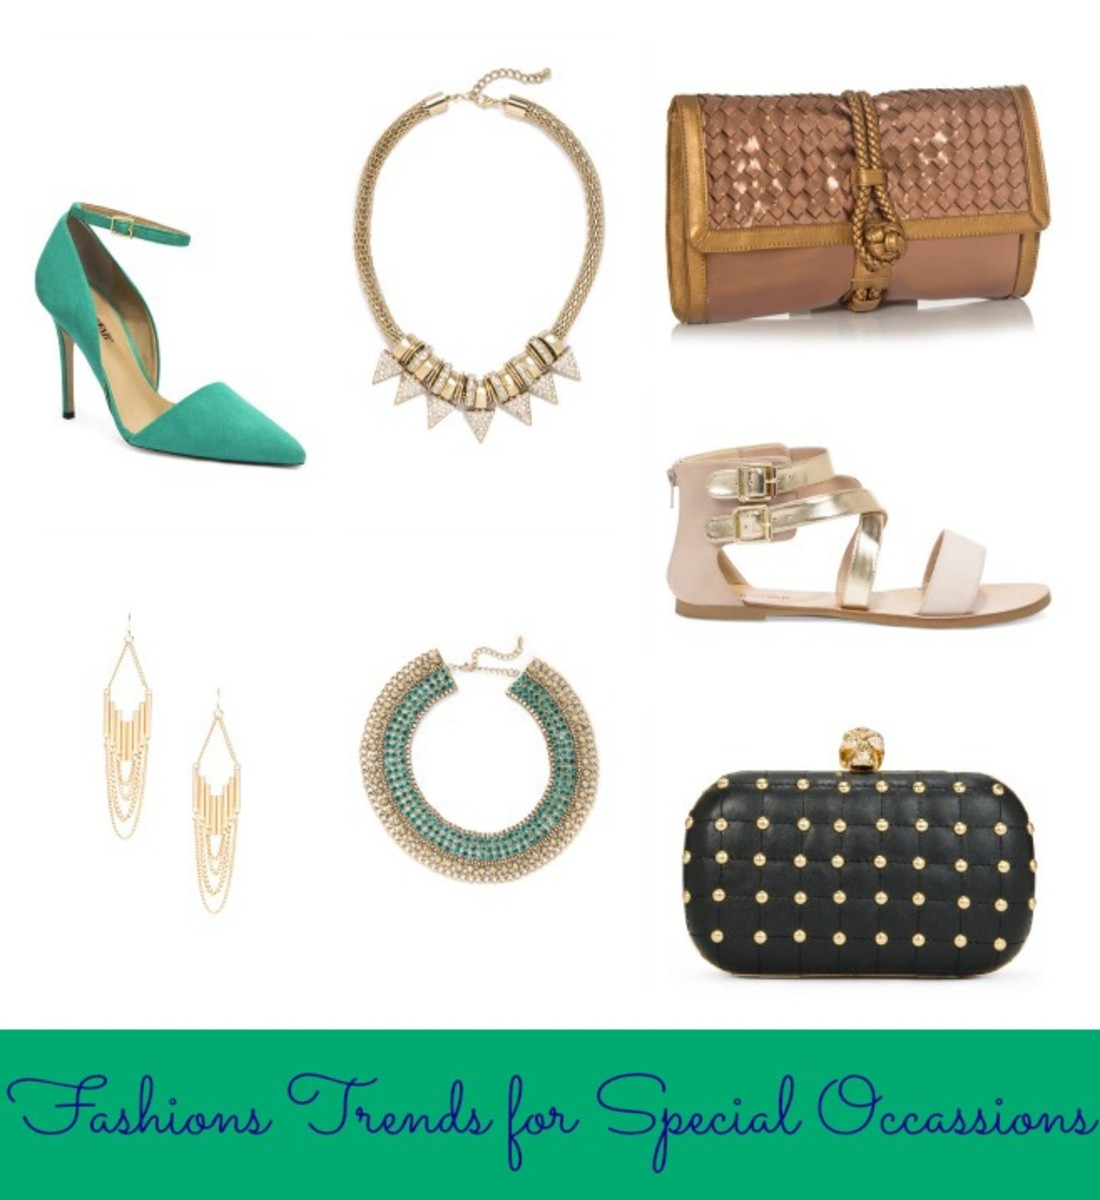 fashion trends, fashion trends for moms, justfab.com, fashion, fashions for moms, momtrends